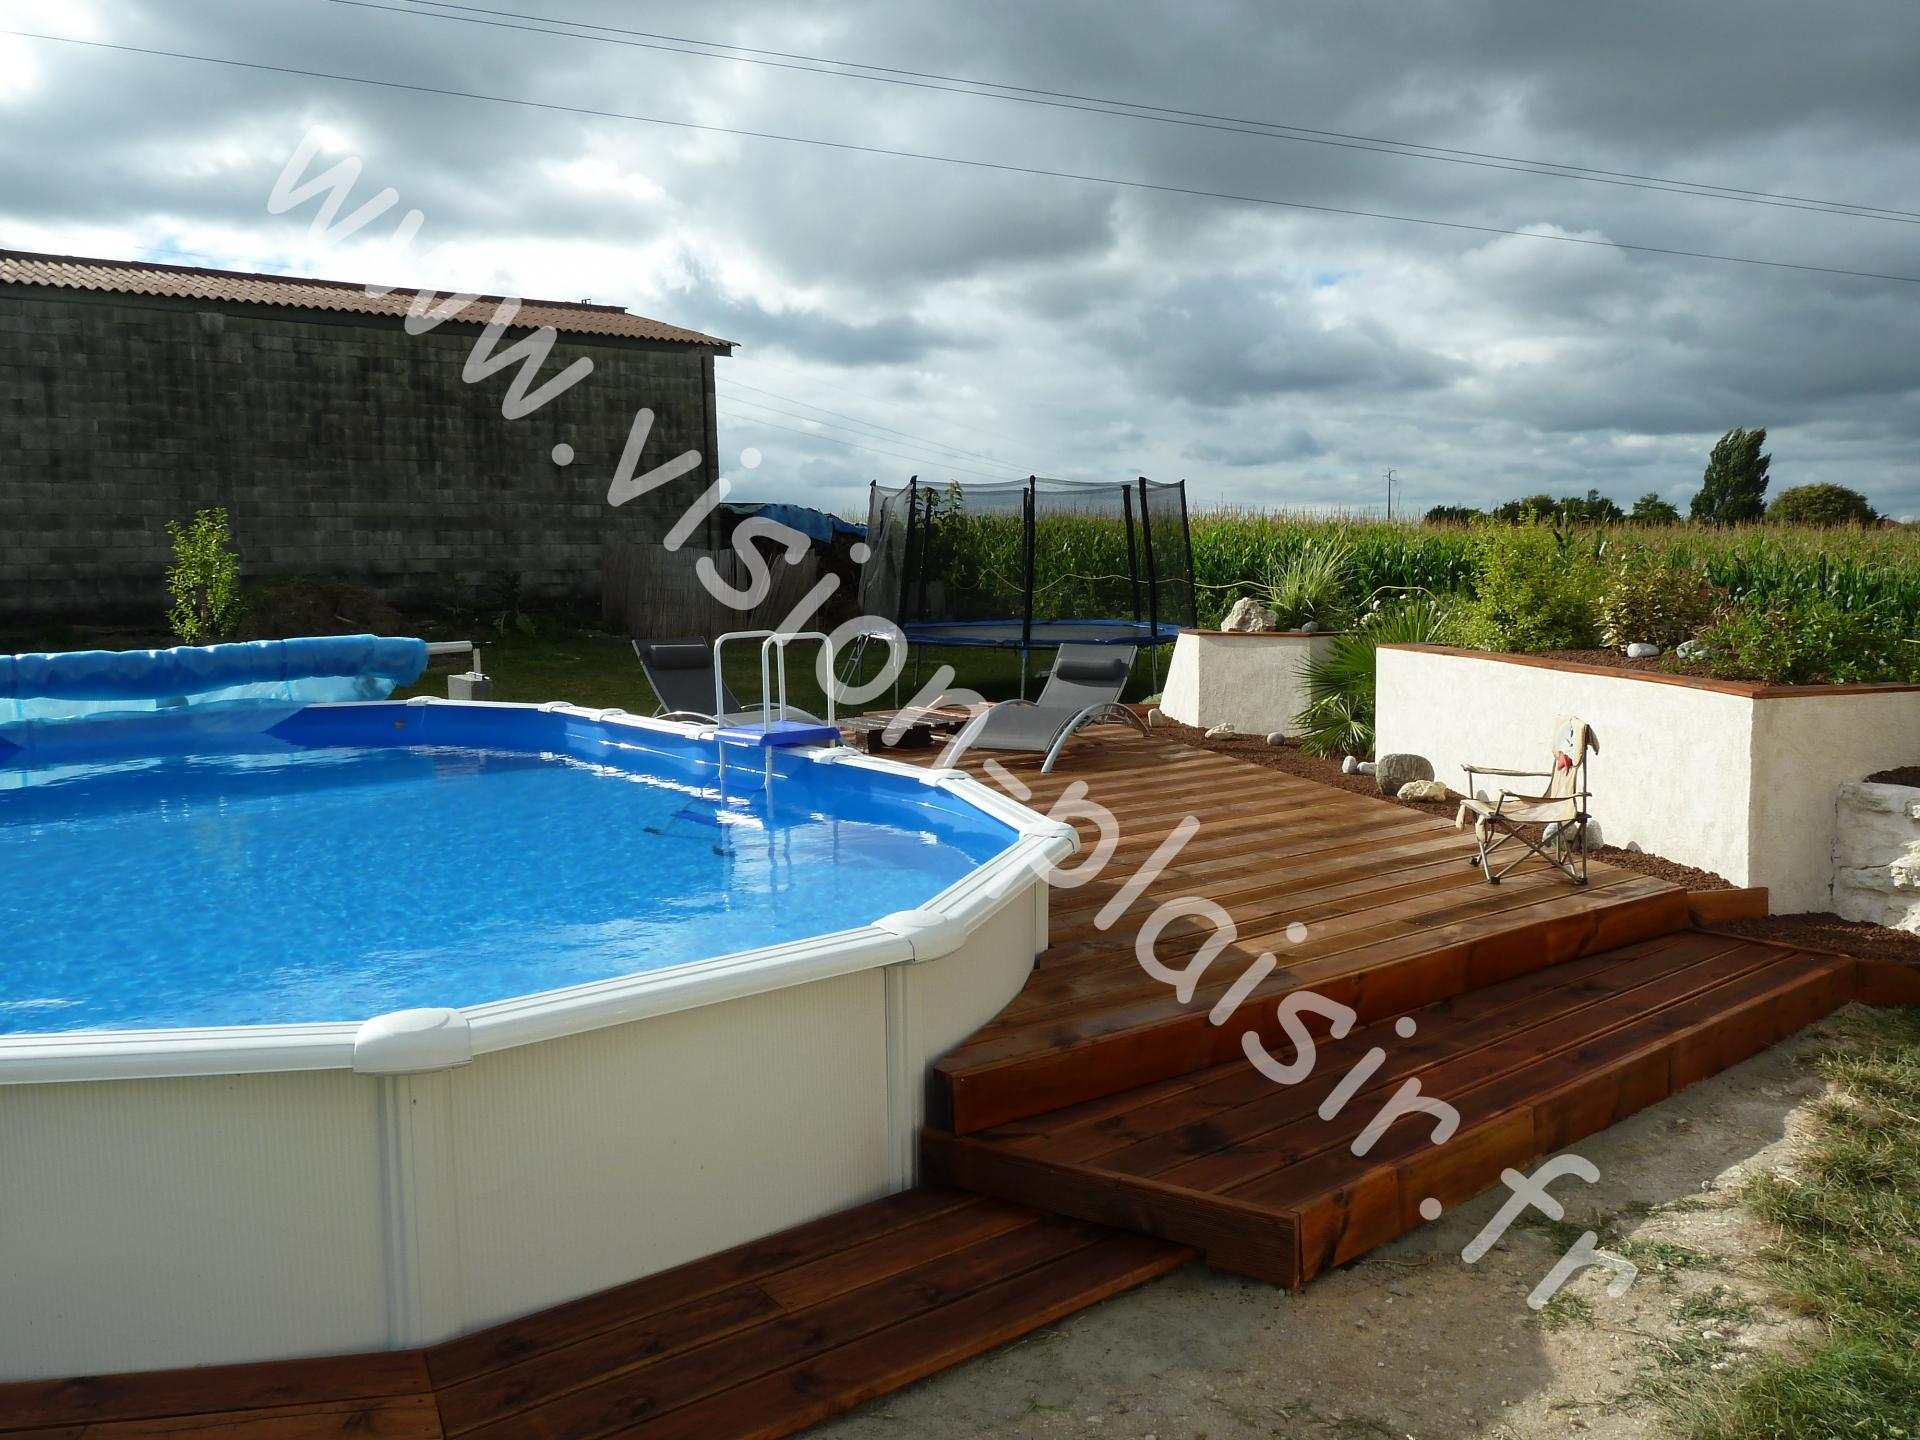 Blog de vision plaisir piscine hors sol semi enterr e for Piscine semi enterre bois